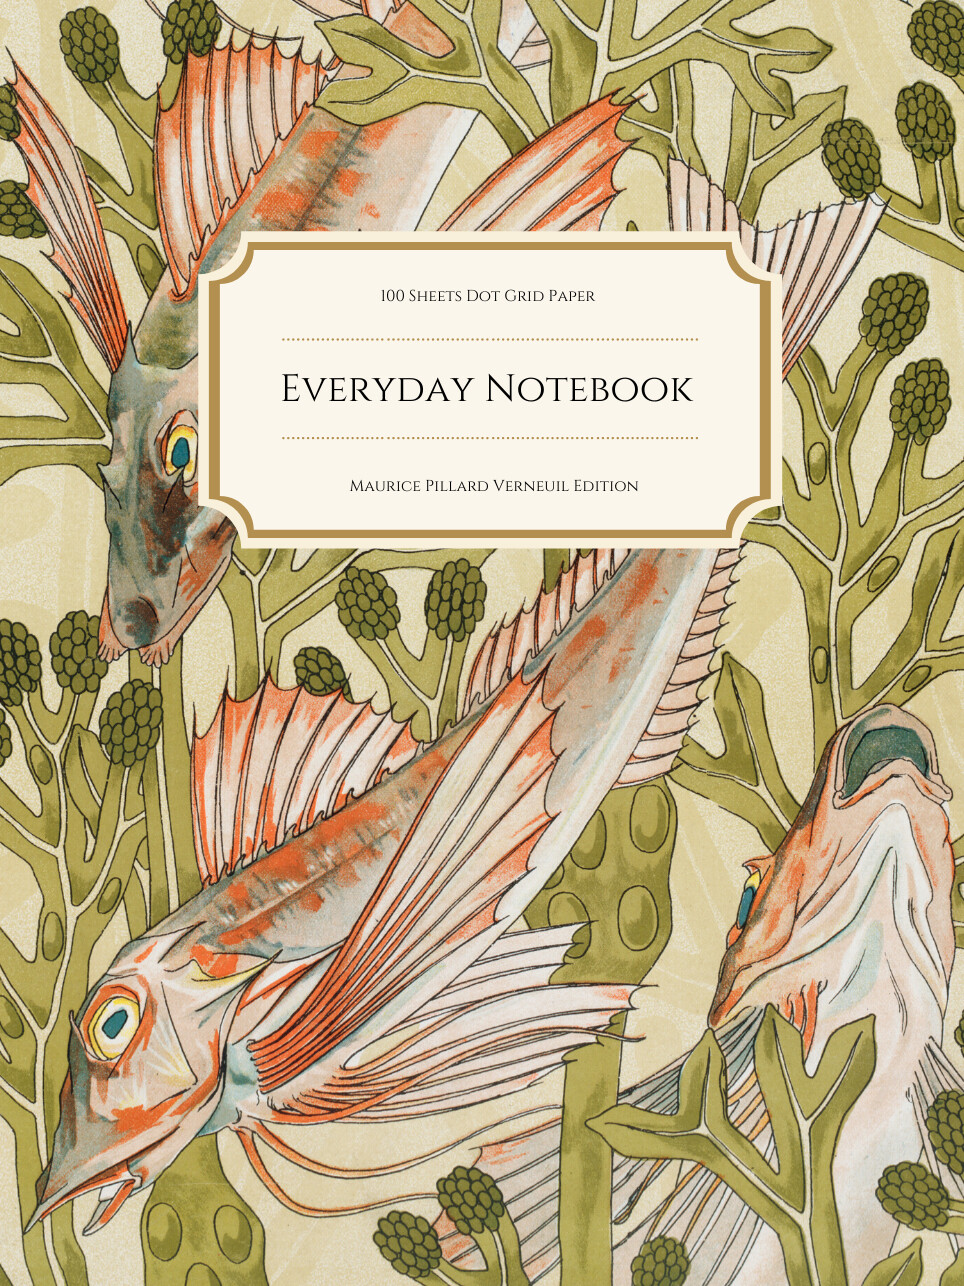 Everyday Notebook (Maurice Pillard Verneuil Edition)